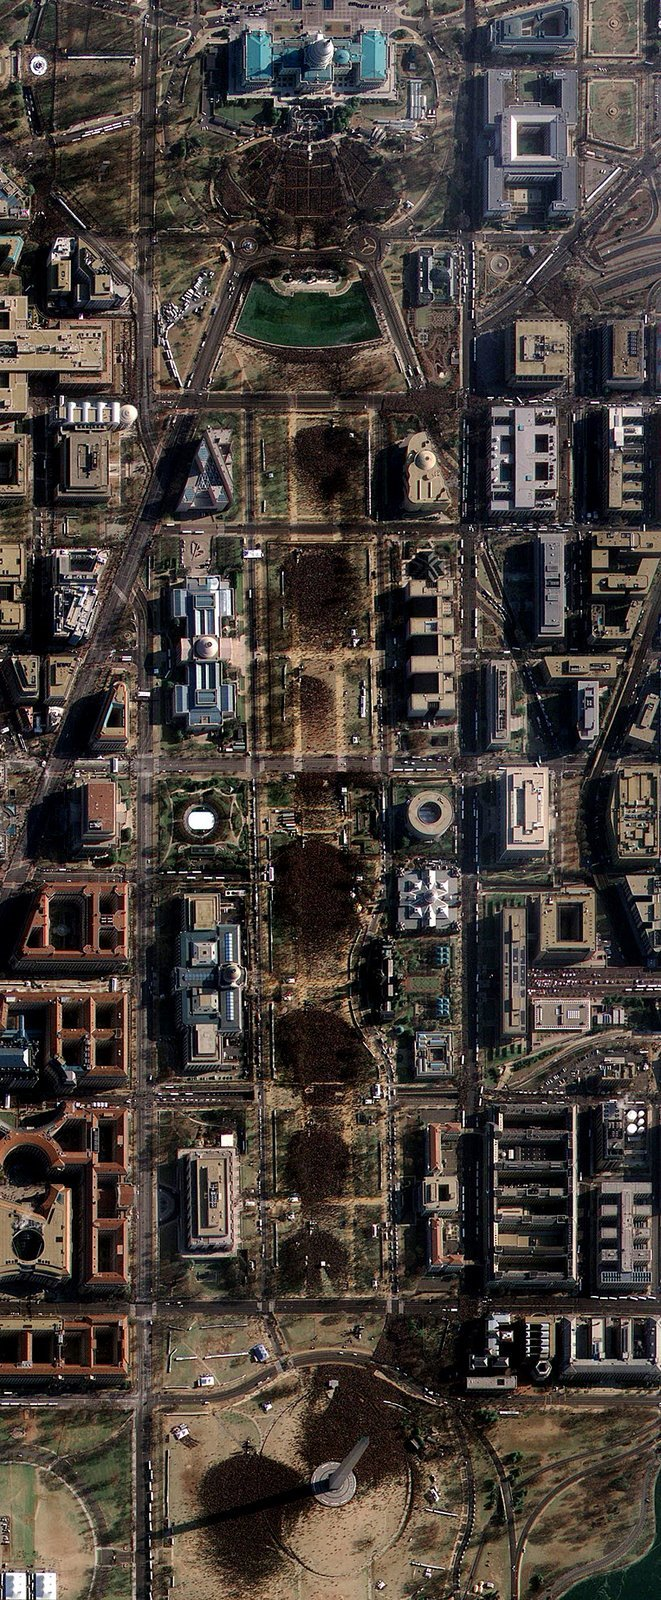 Inauguration from Space